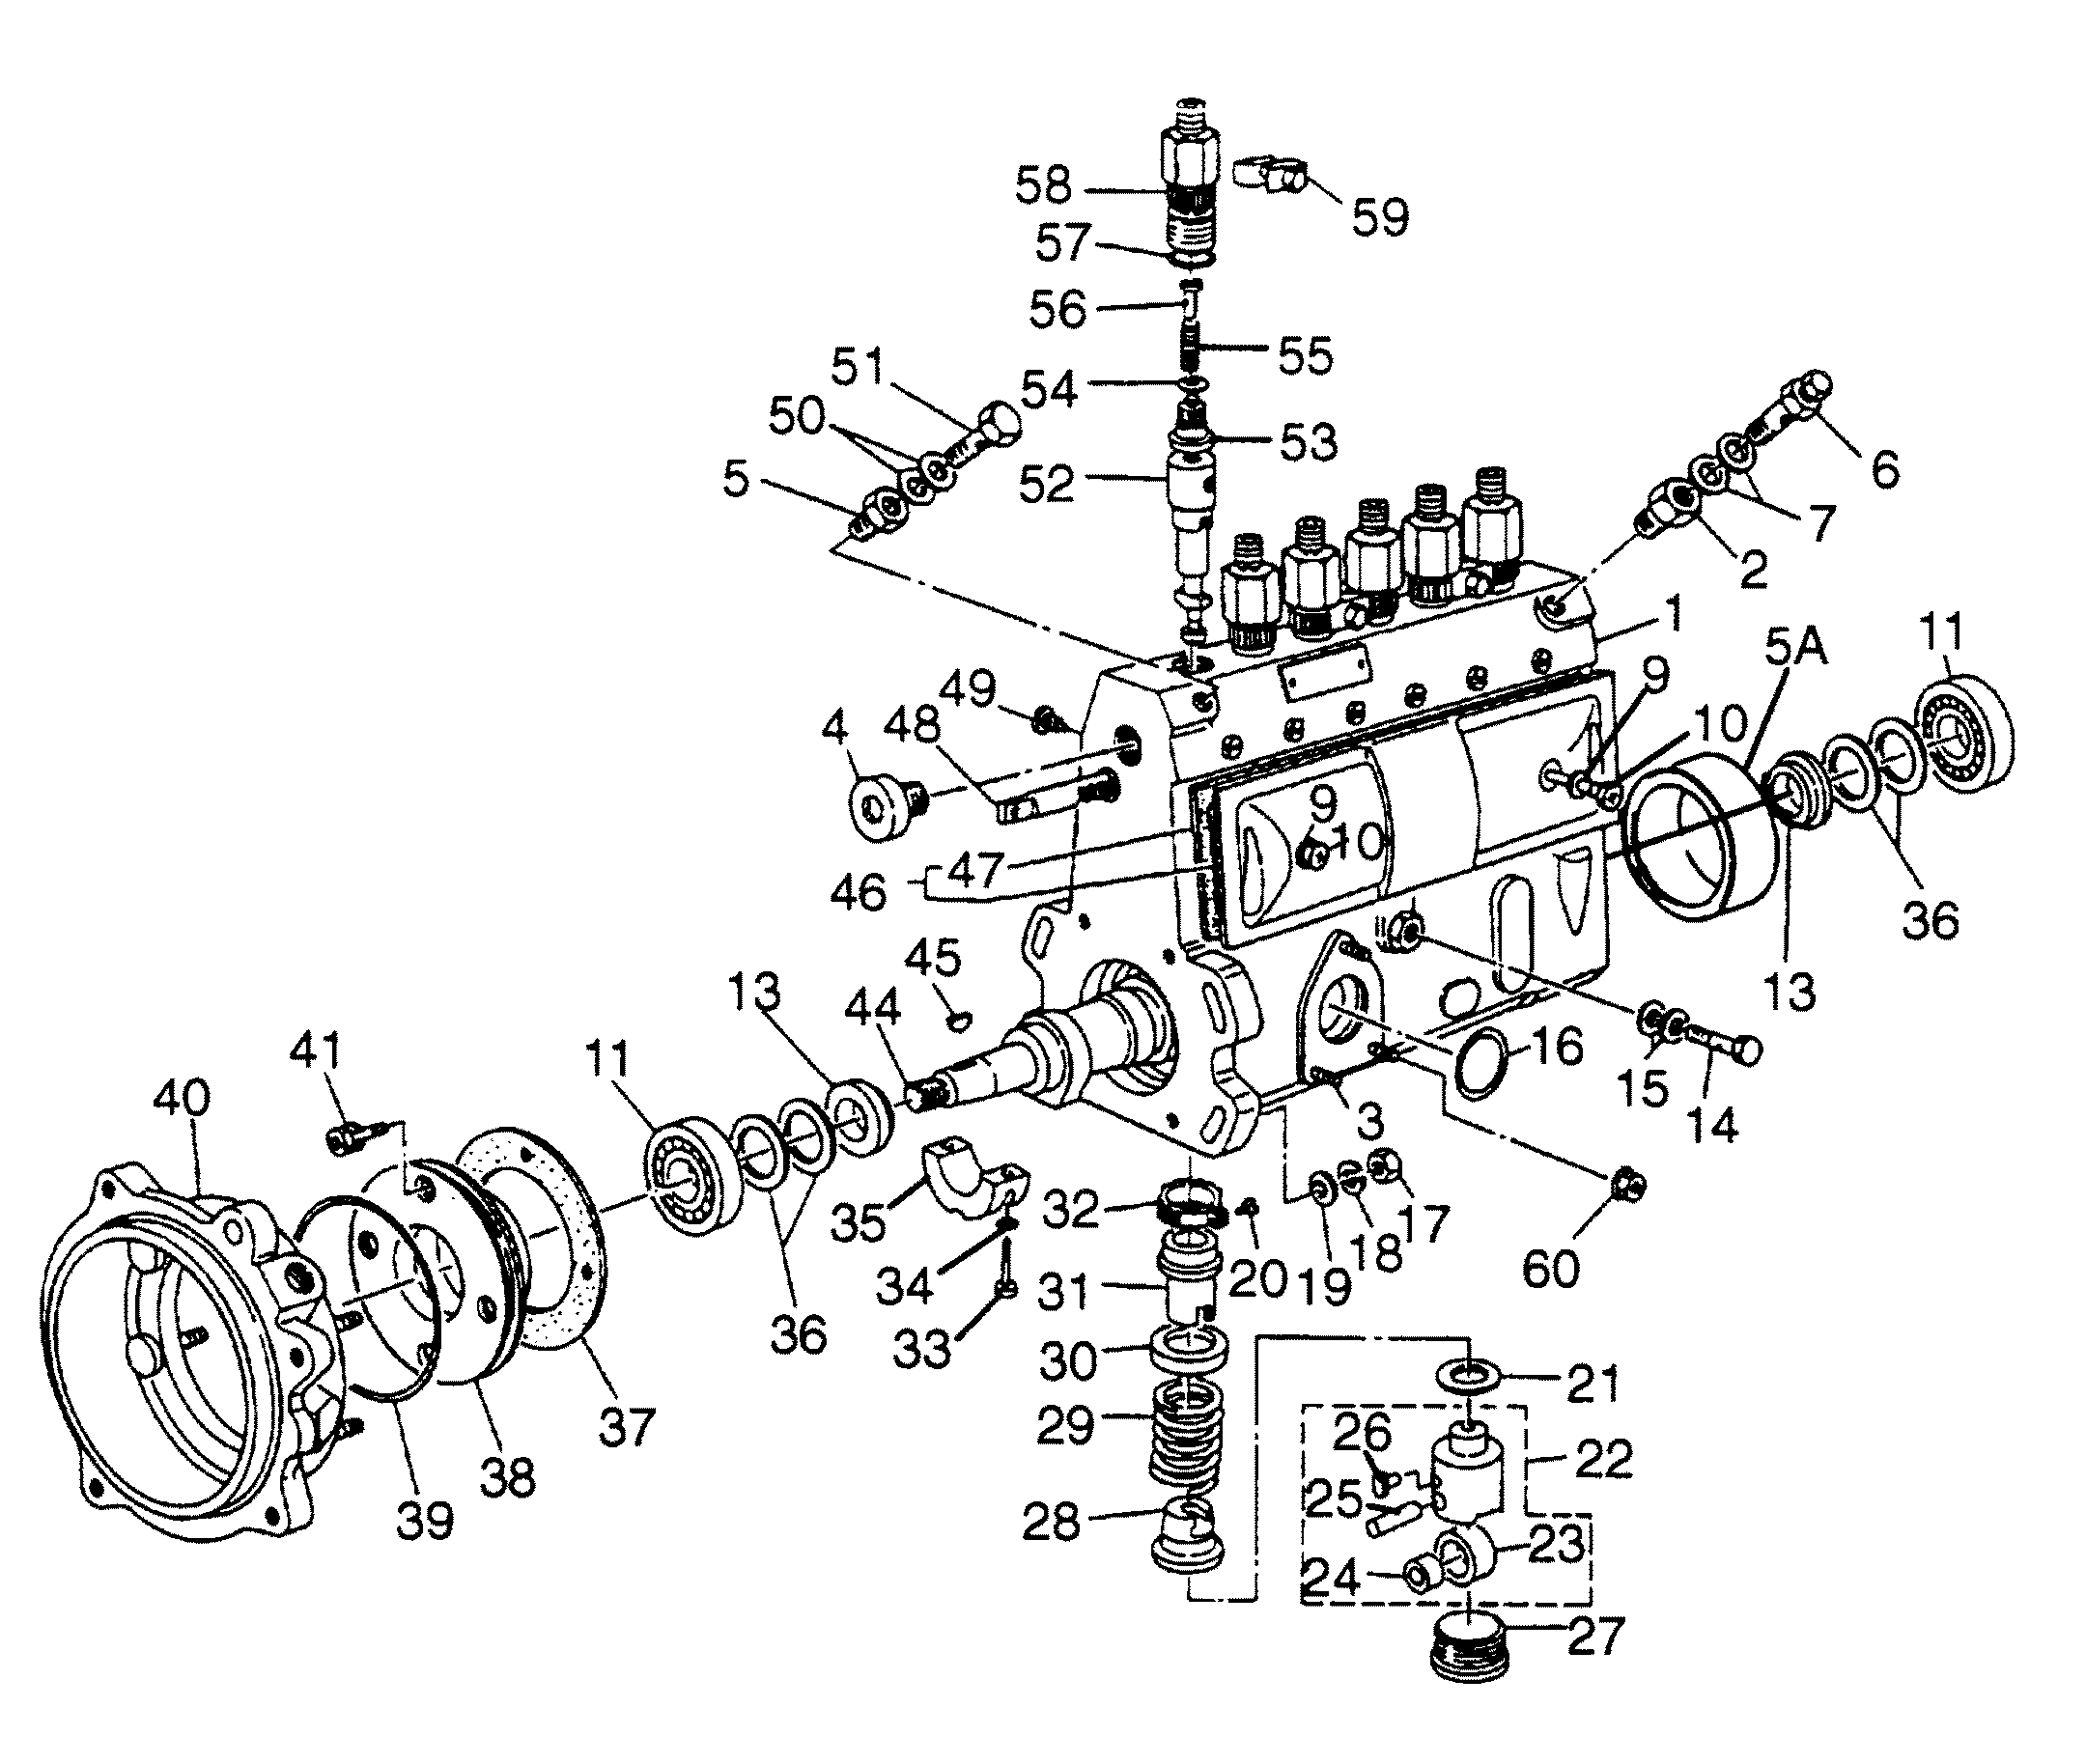 p7100 injection pump diagram